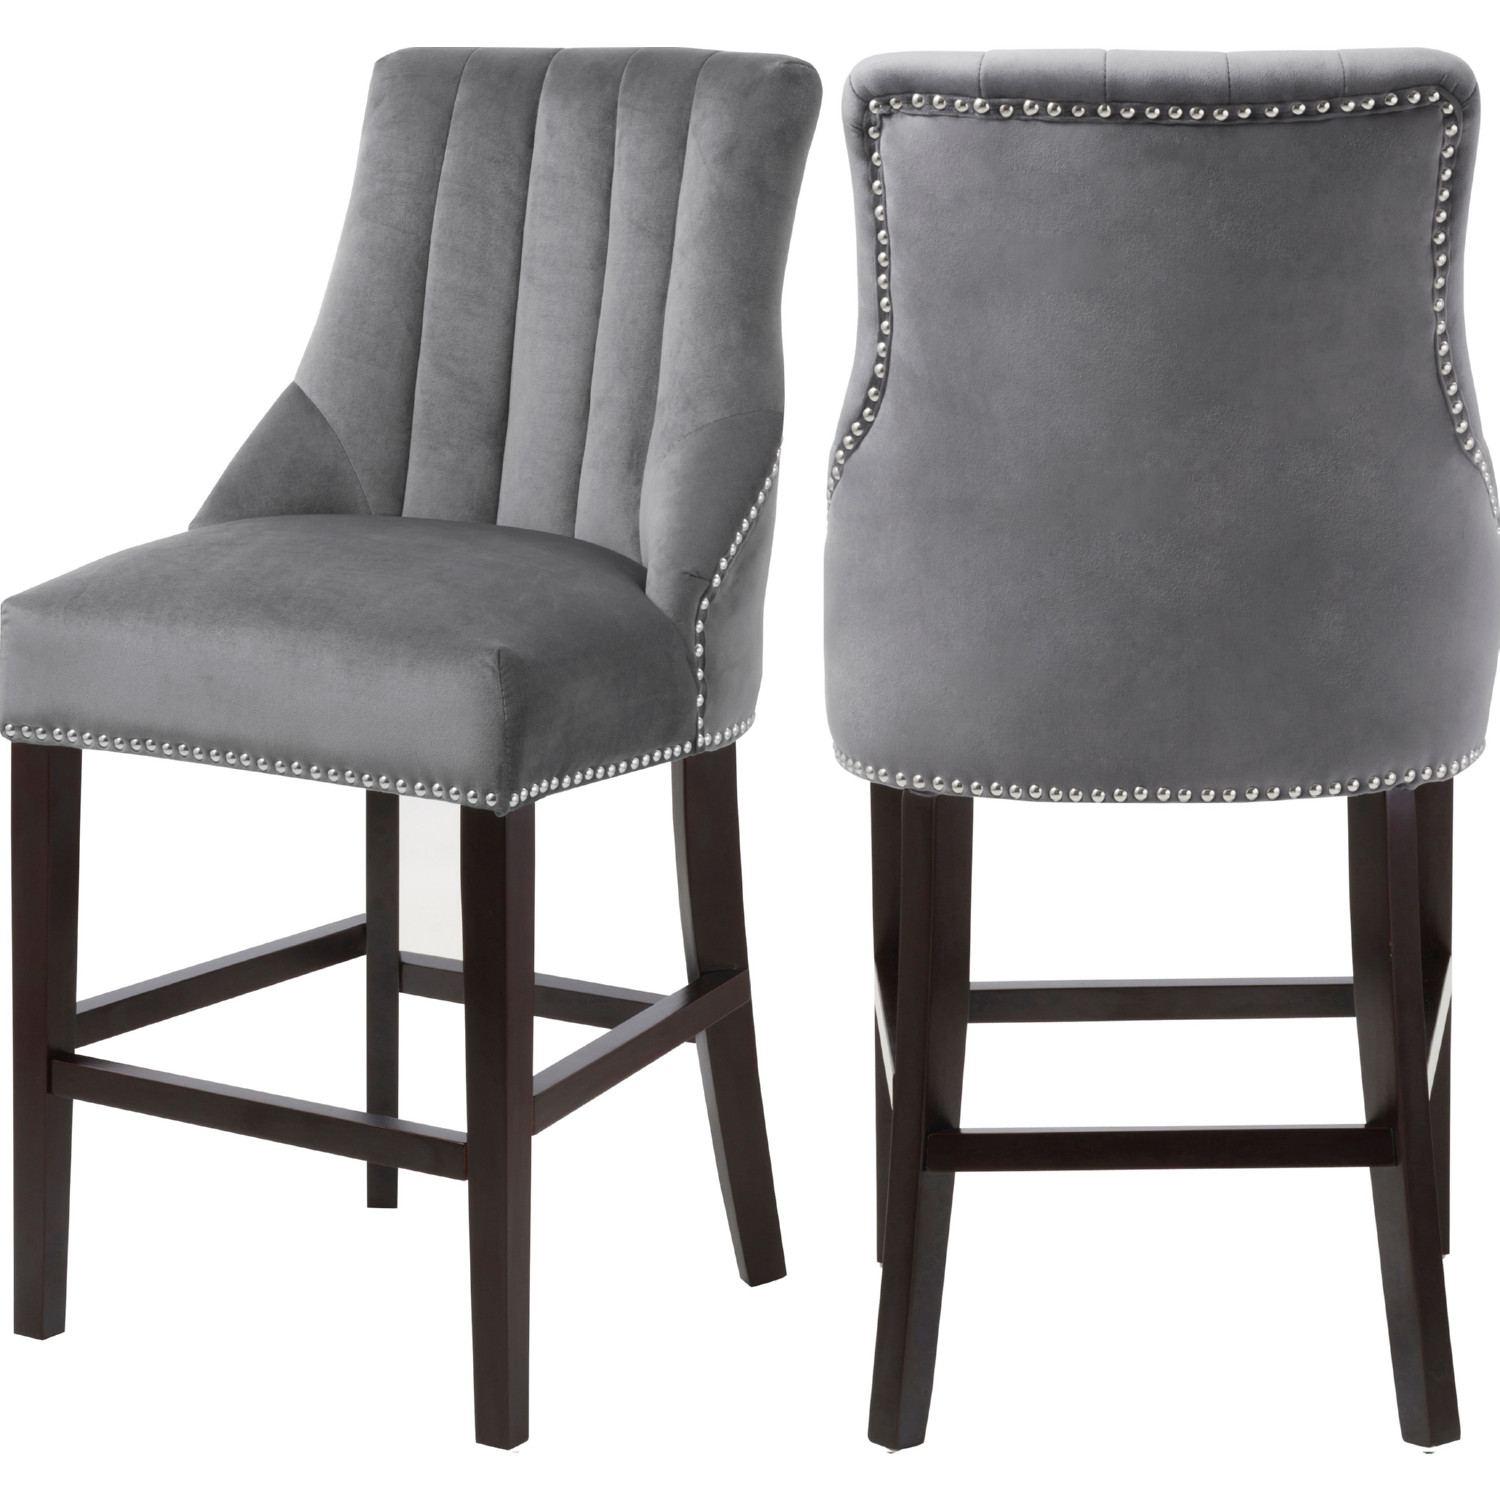 Amazing Oxford Counter Stool In Channel Tufted Grey Velvet Set Of 2 By Meridian Furniture Ibusinesslaw Wood Chair Design Ideas Ibusinesslaworg